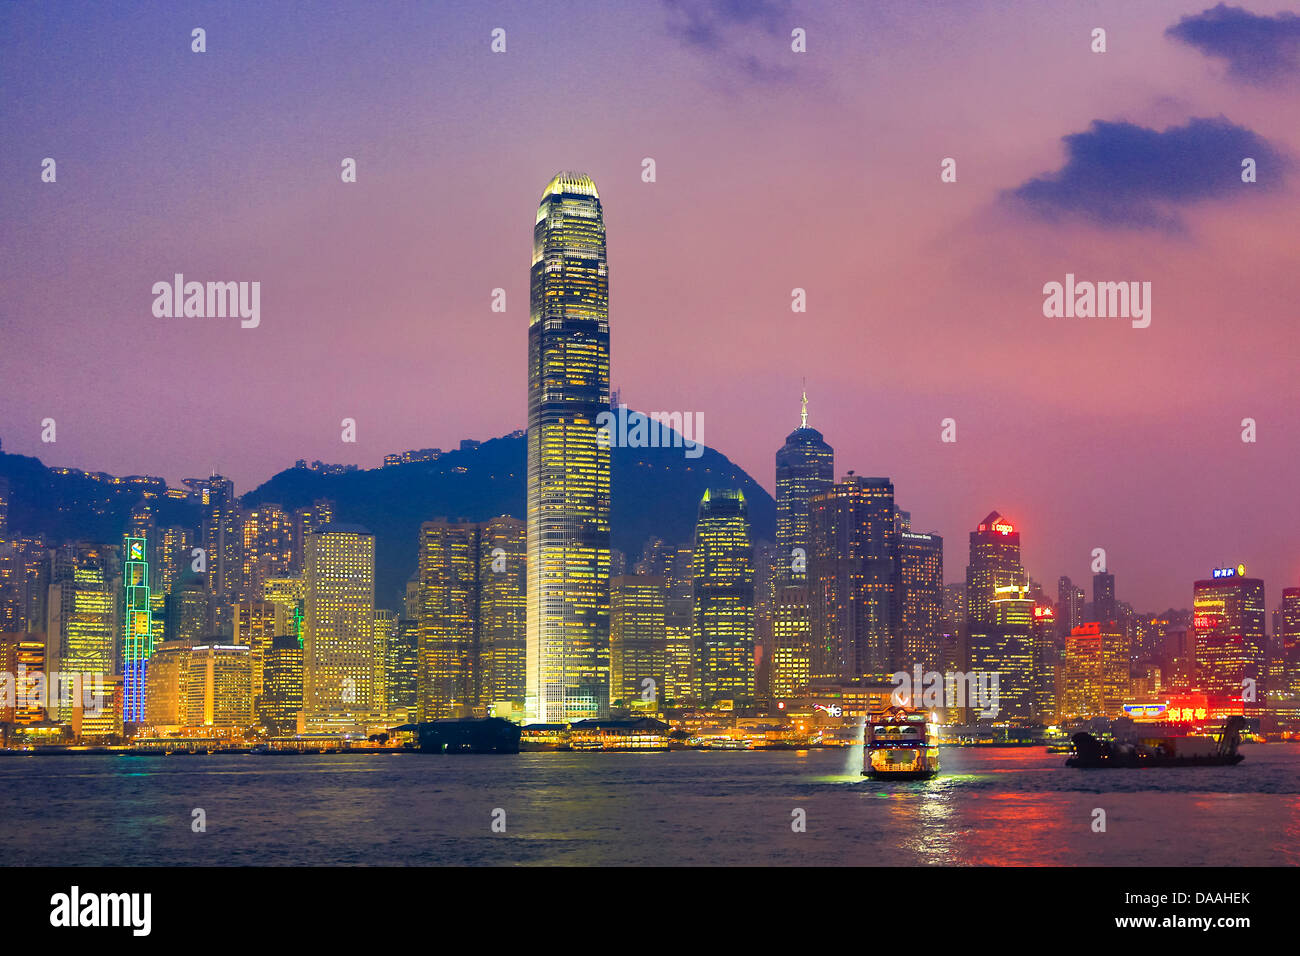 Hong Kong, China, Asia, City, Sunset, Financial, Center, Building, central, lights, panorama, peak, skyline, skyscrapers, - Stock Image